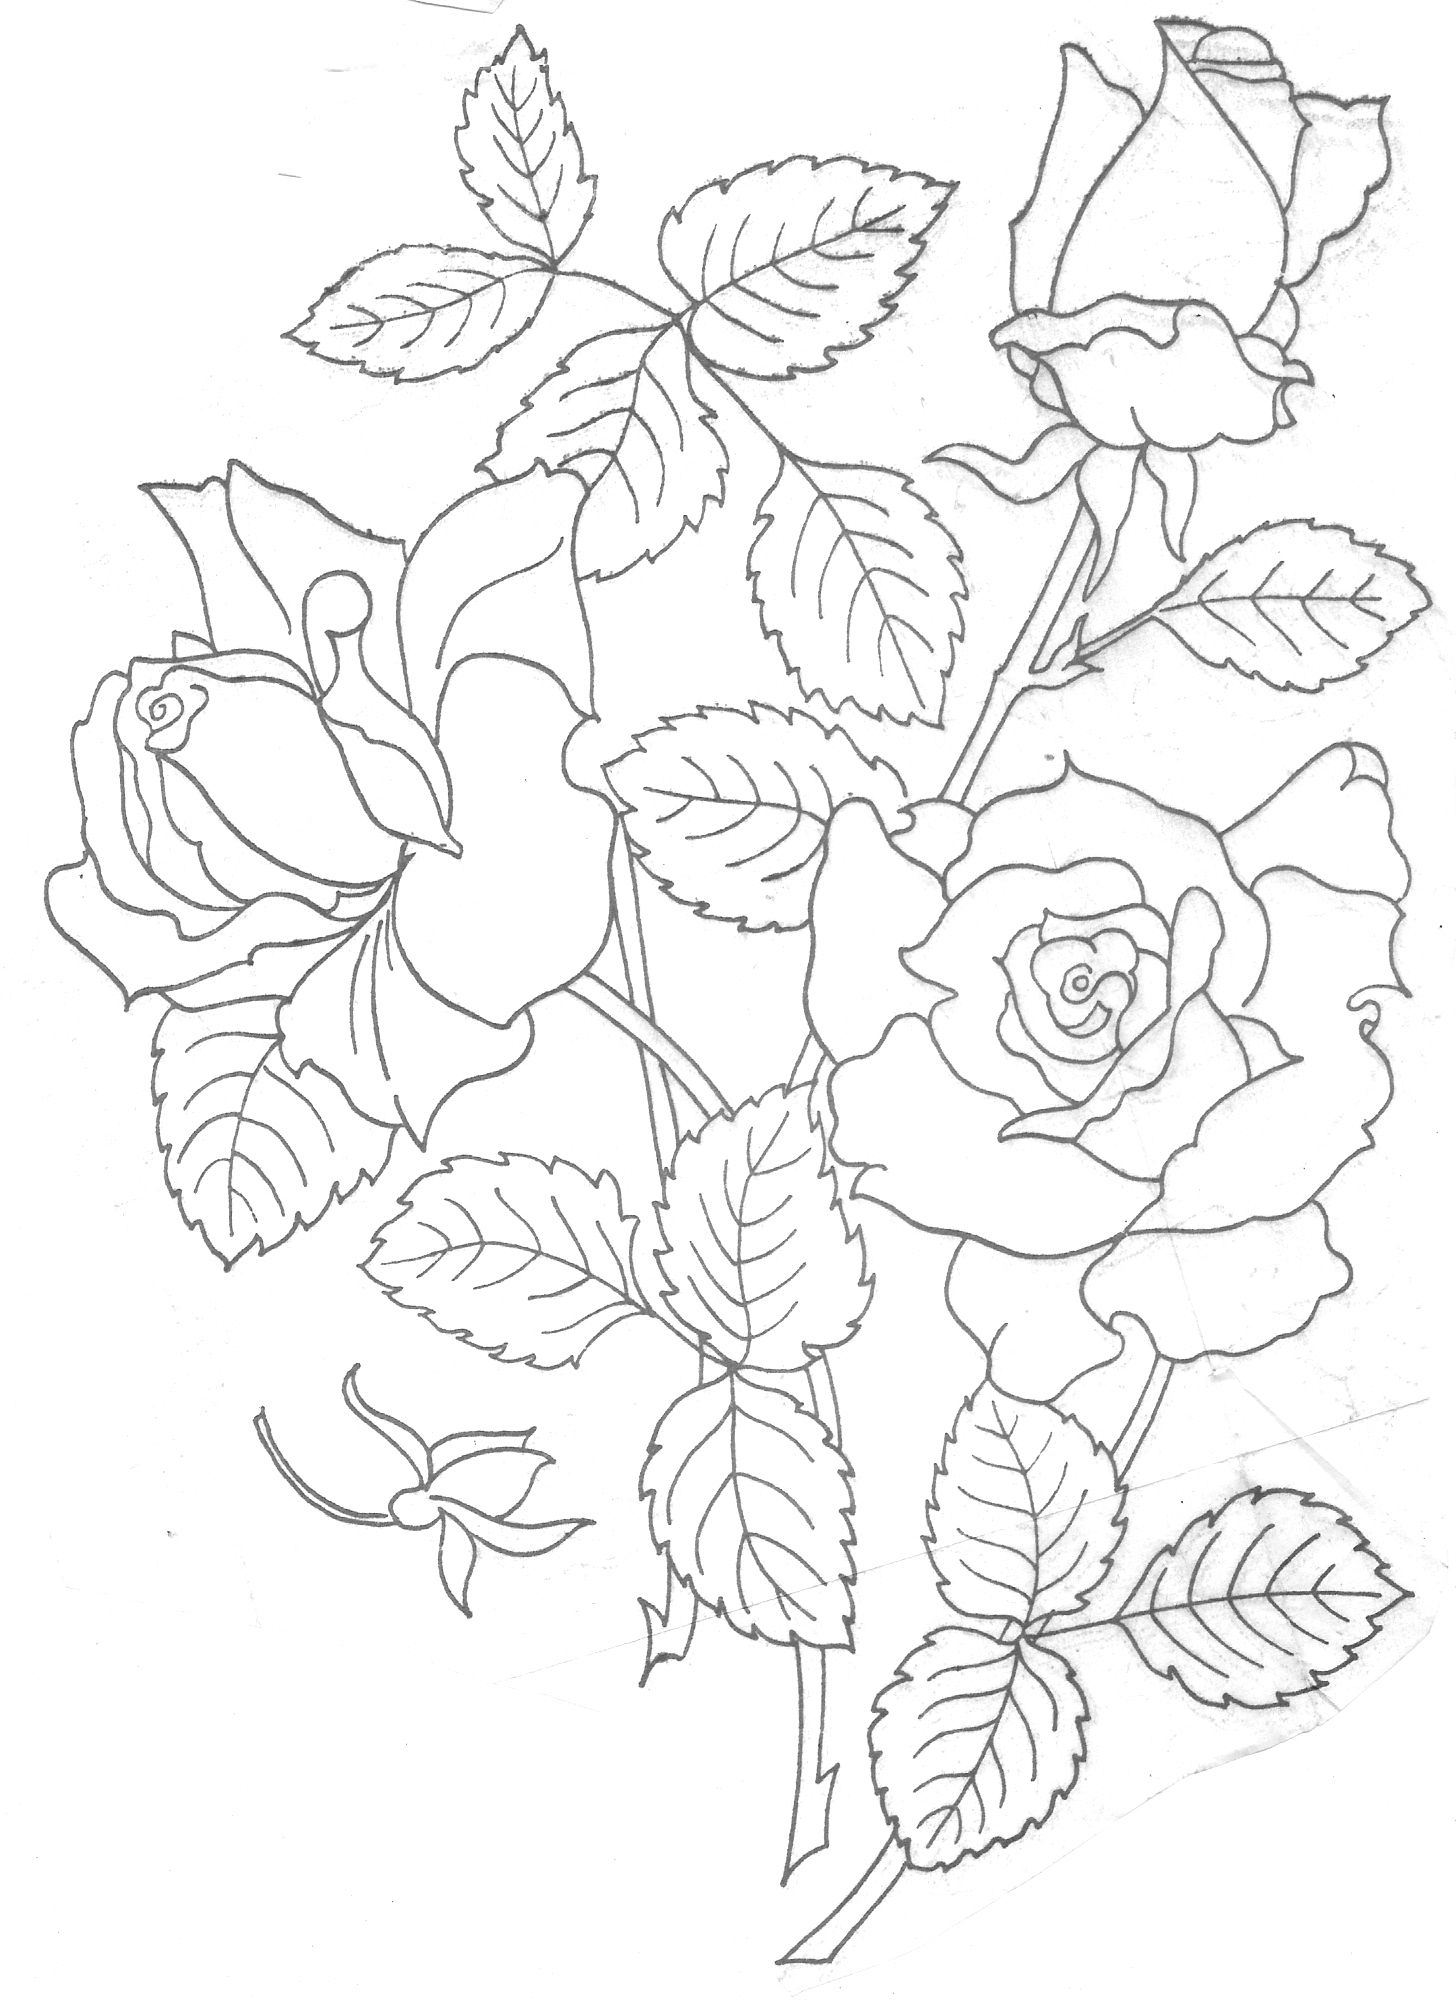 Hand embroidery patterns free printables embroidery patterns hand embroidery patterns free printables embroidery patterns flowers free patterns bankloansurffo Images